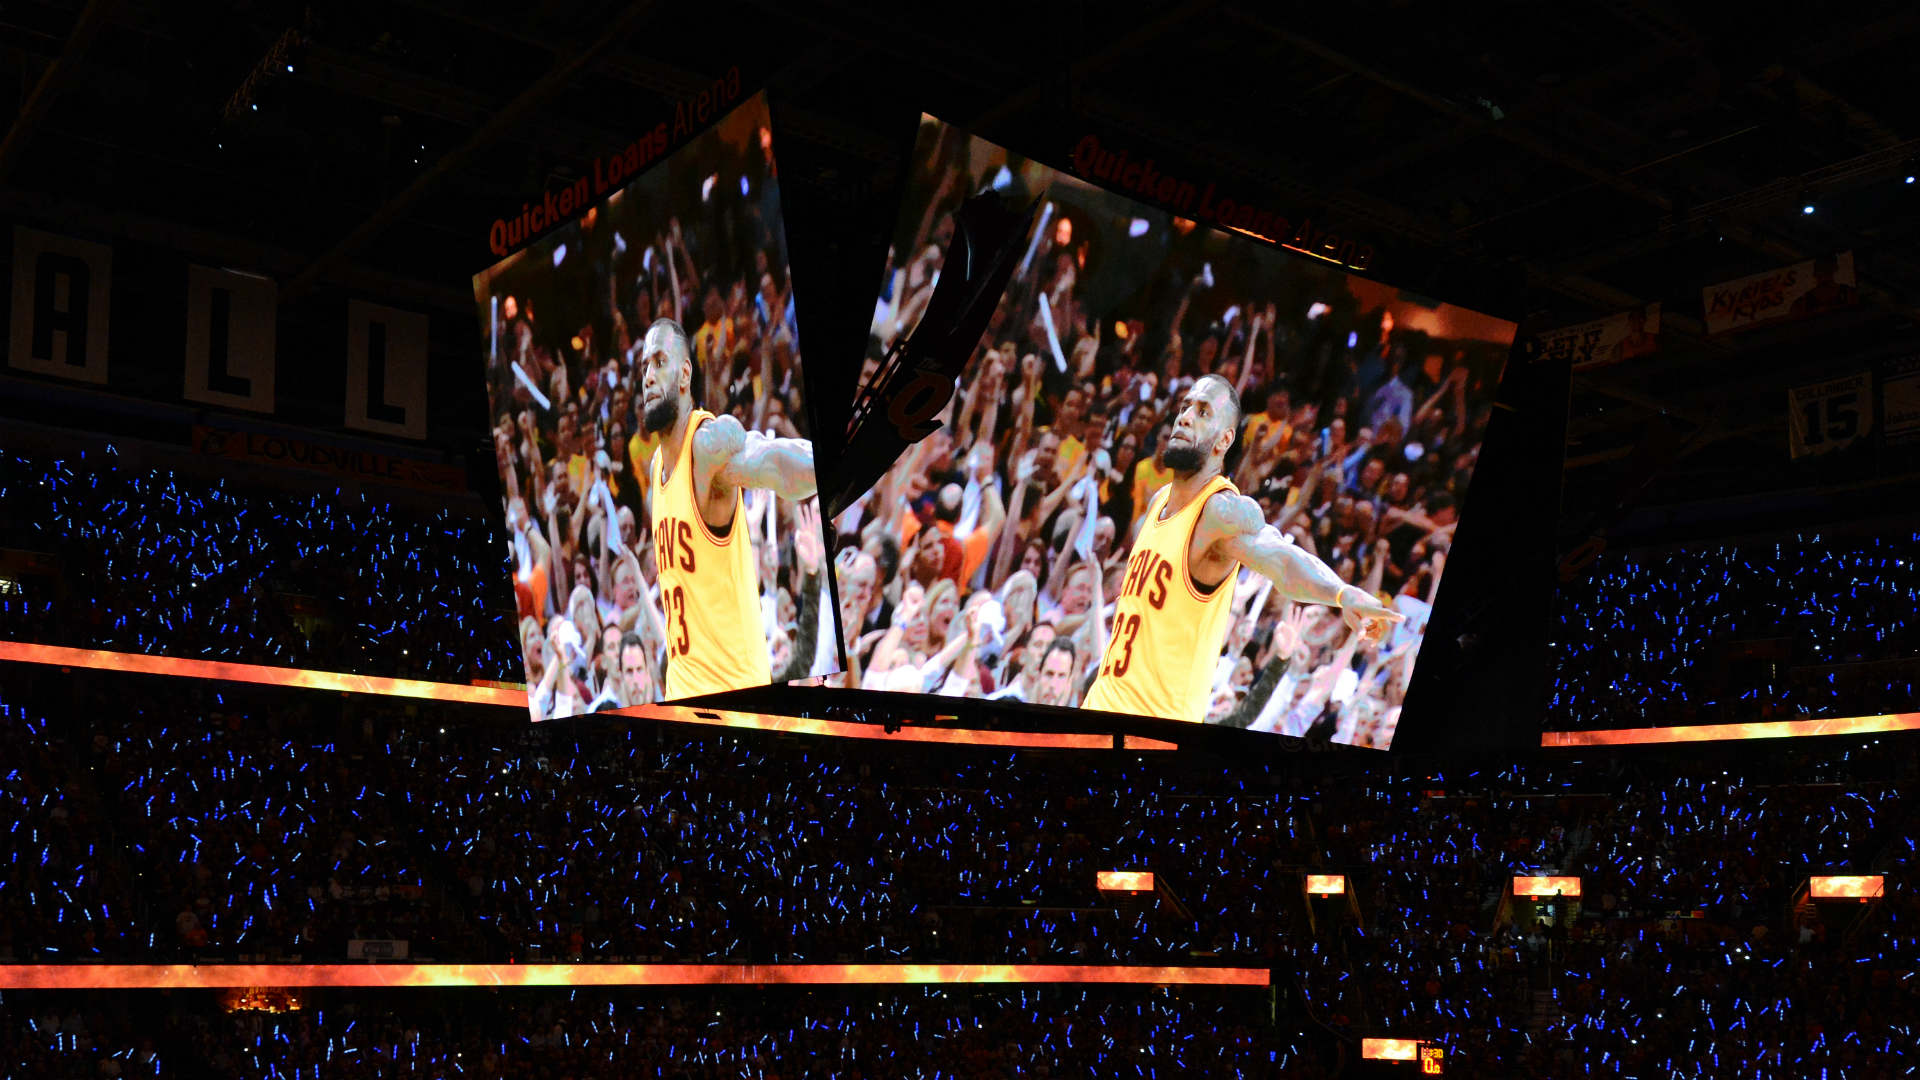 Cavs Clinch East; LeBron to Make 6th Straight Trip to Finals